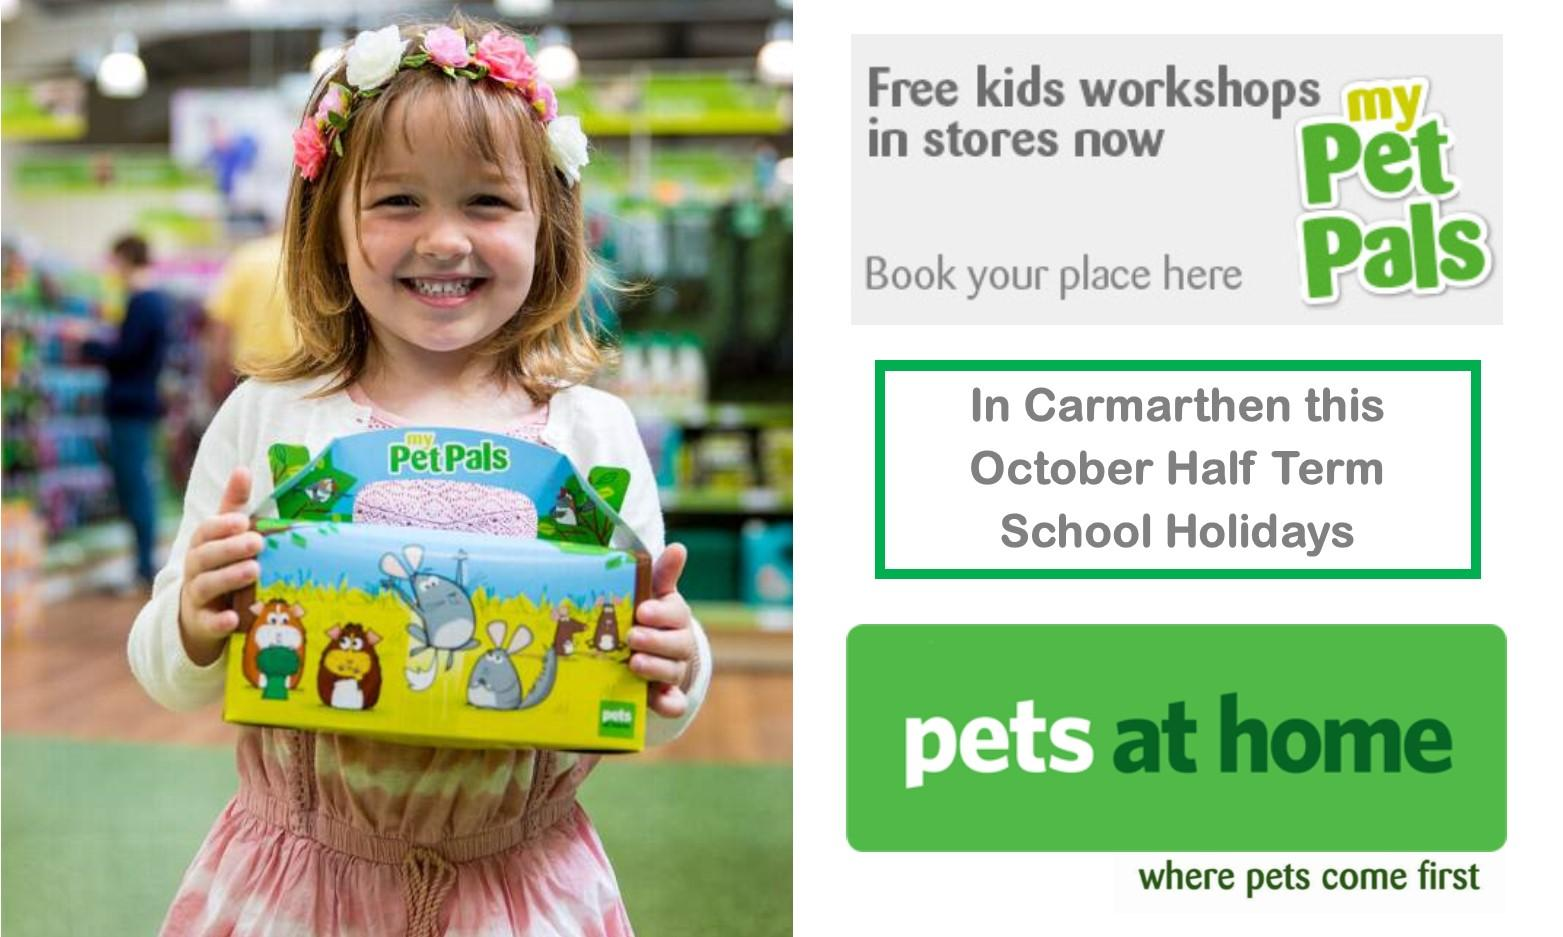 Small Furries Pets at Home Workshop in Carmarthen